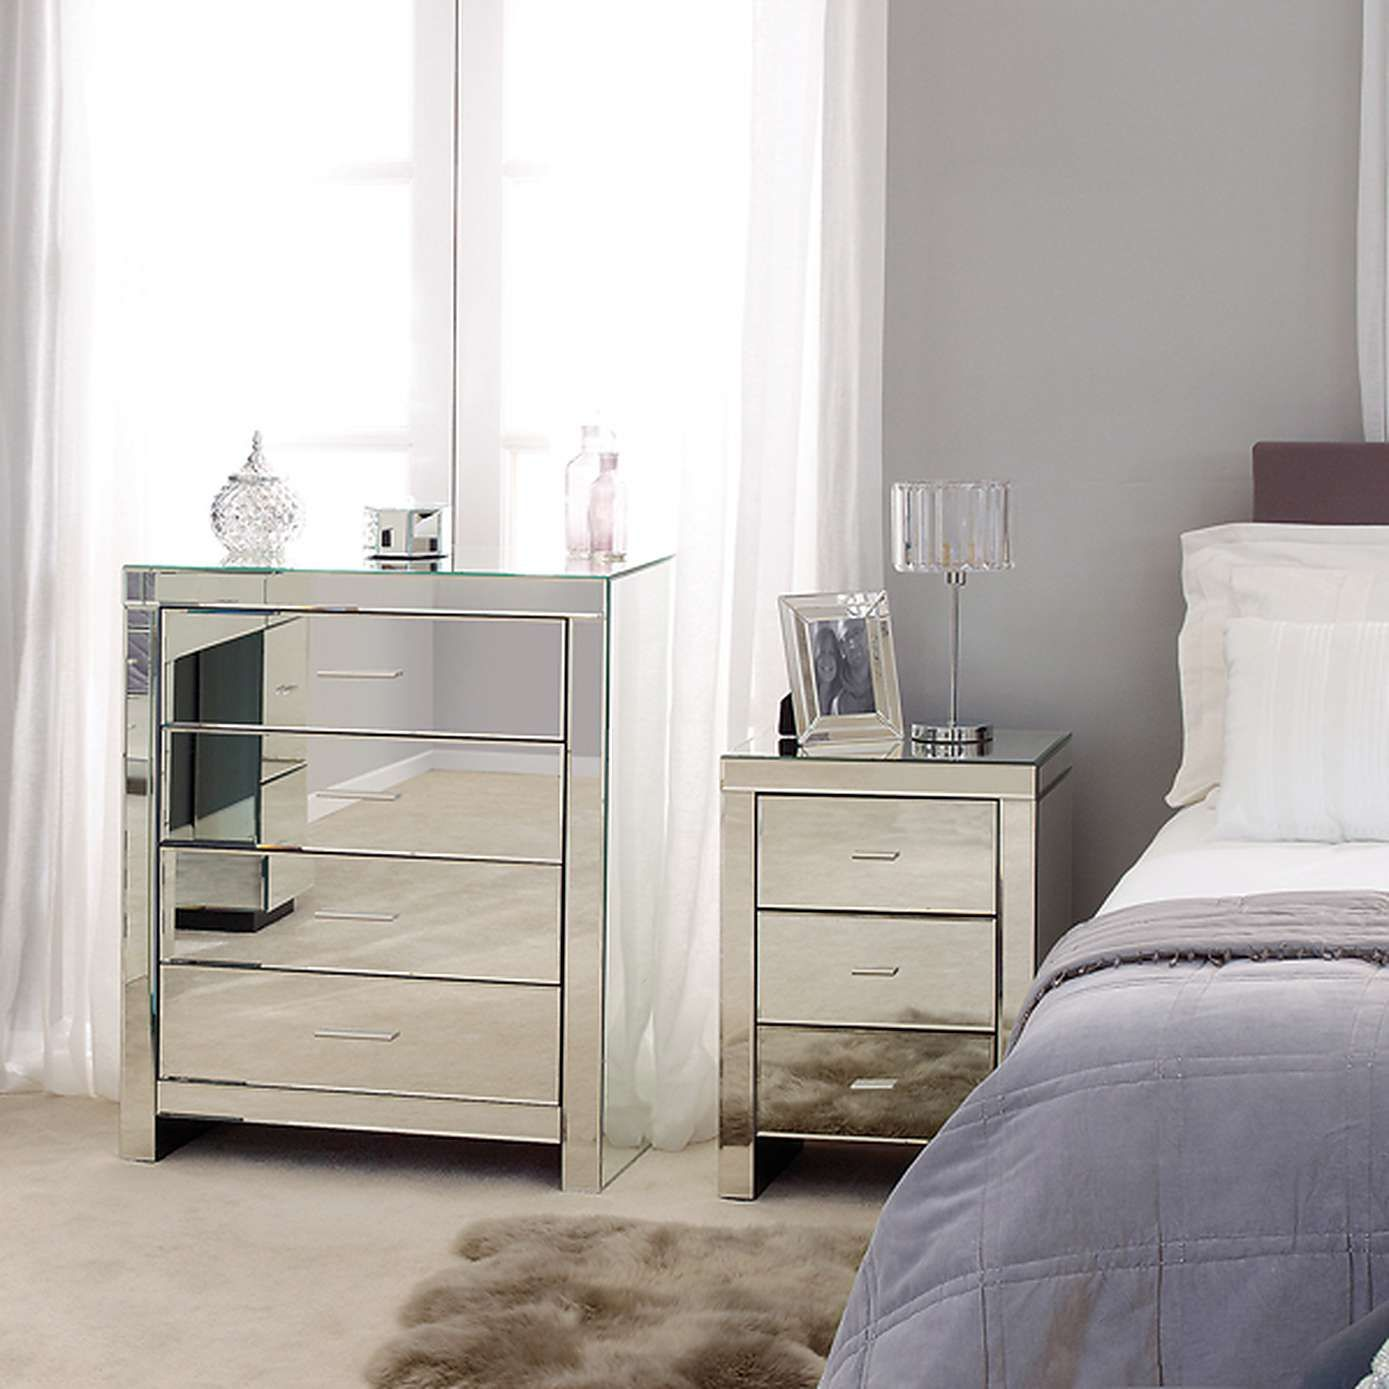 mirrored bedroom furniture sets. mirrored bedroom furniture sets   Training4Green com   Interior